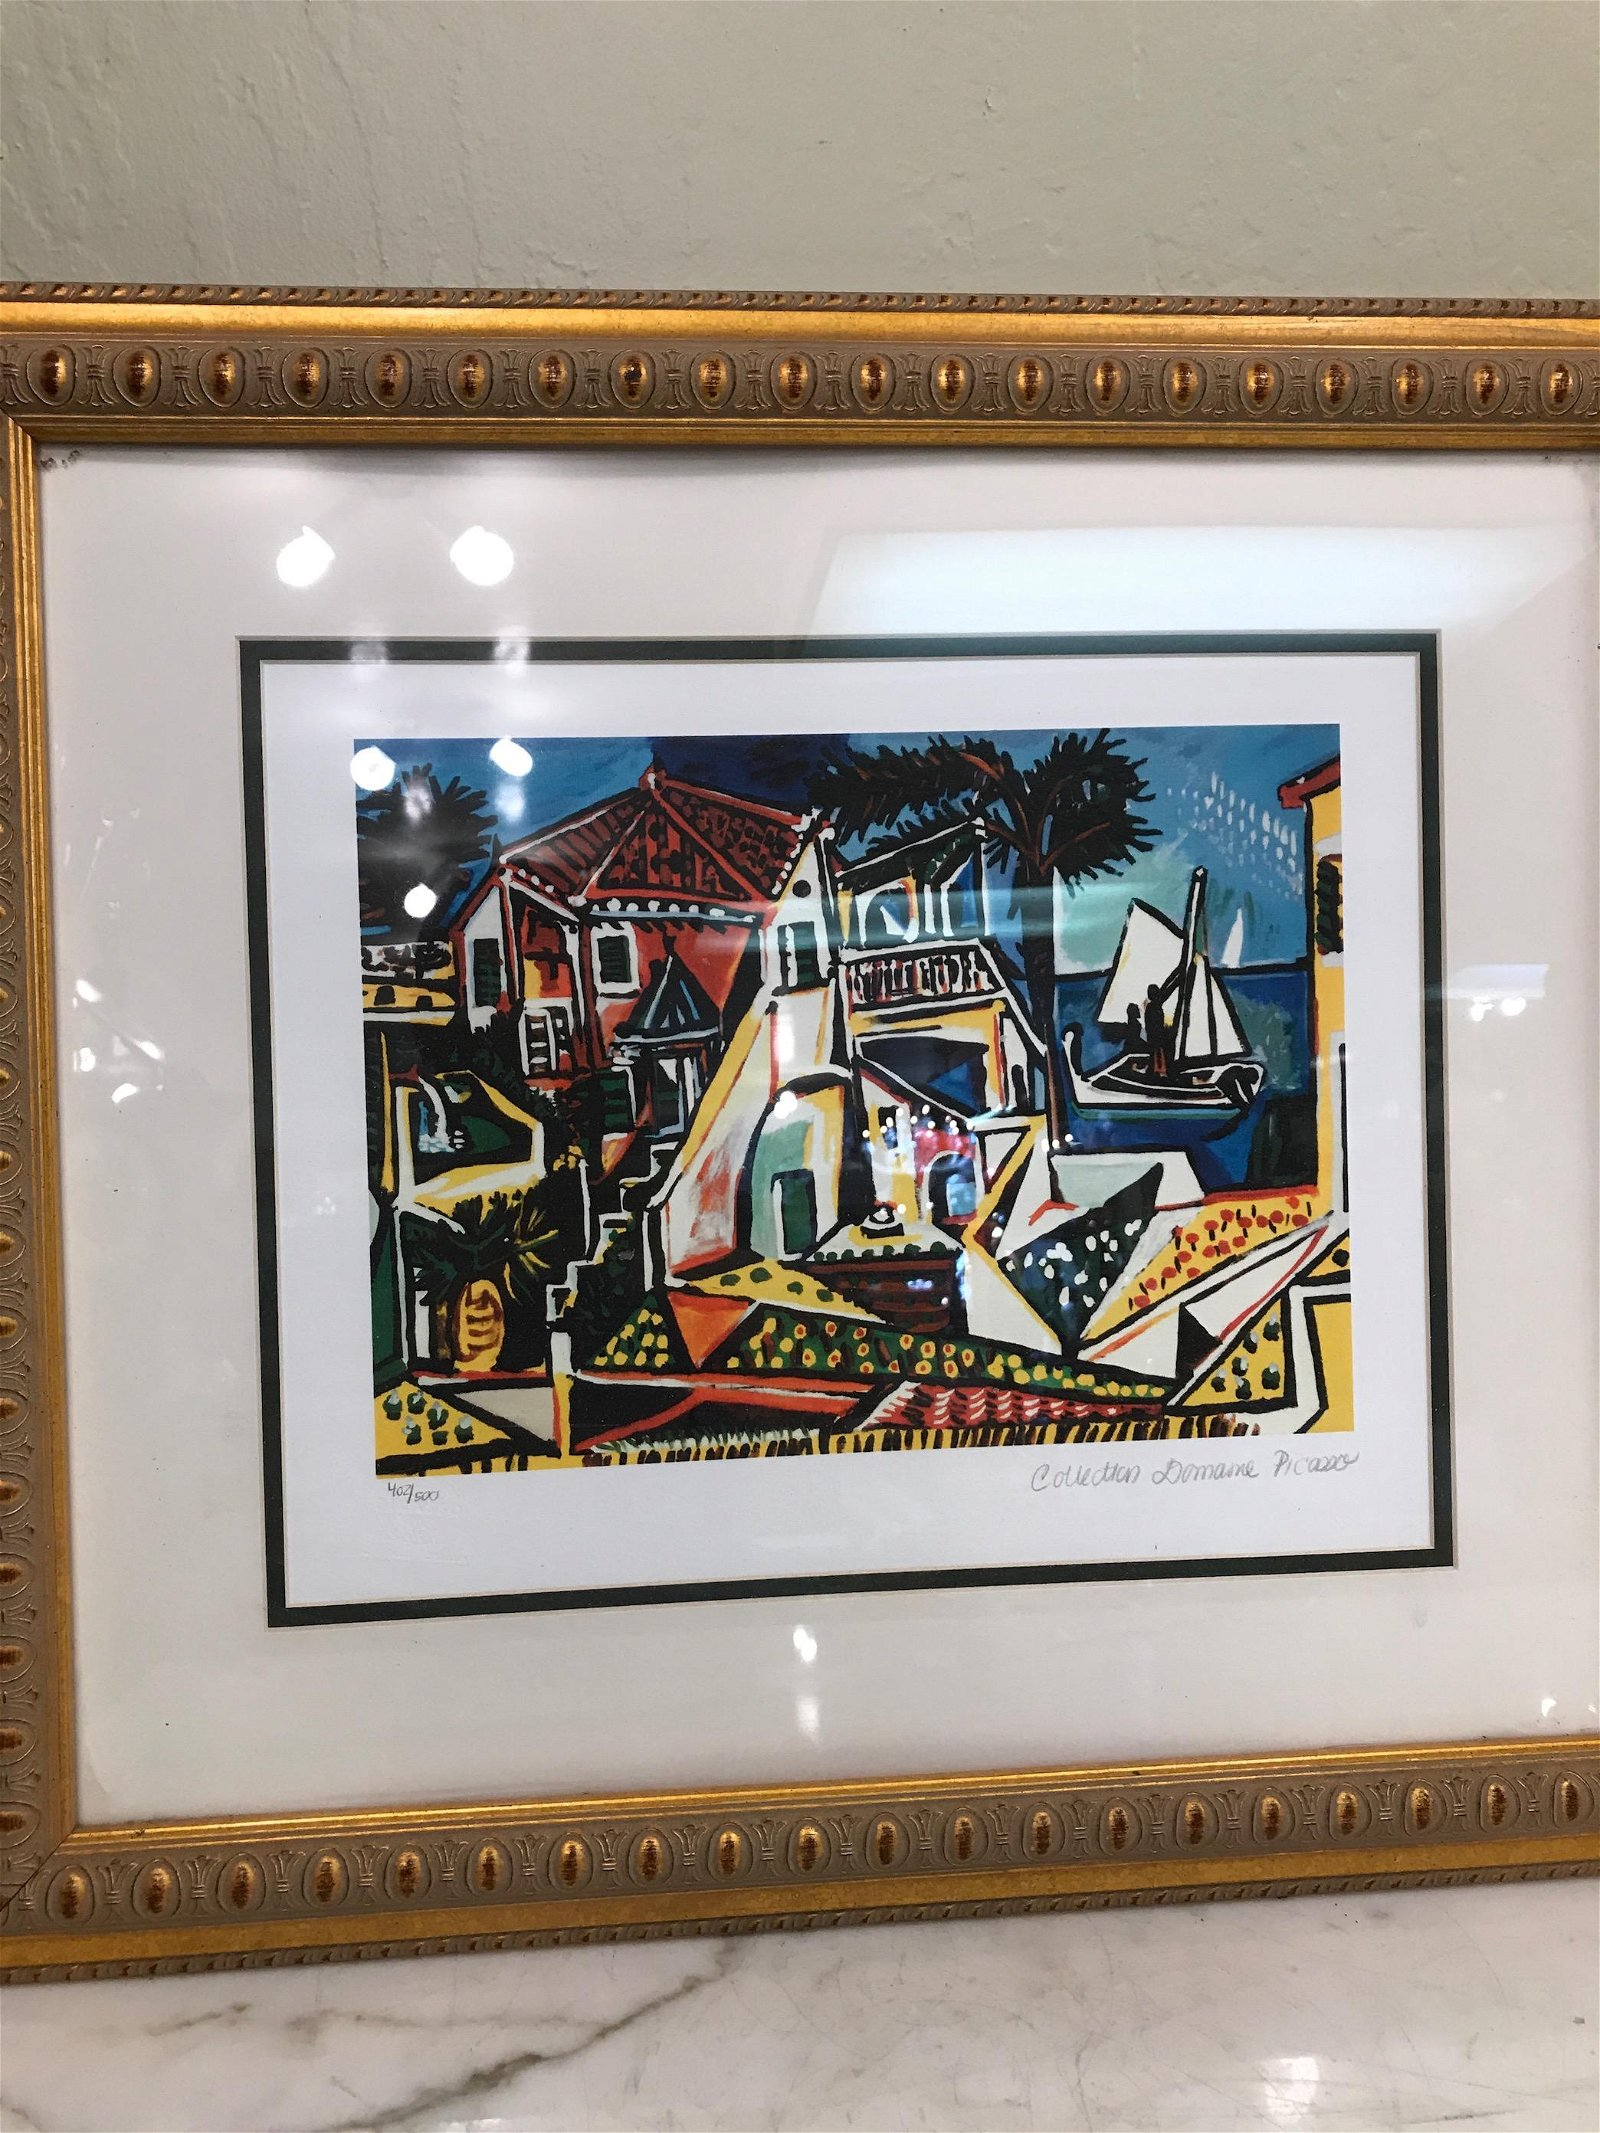 Picasso Print - Limited Edition 402 of 500